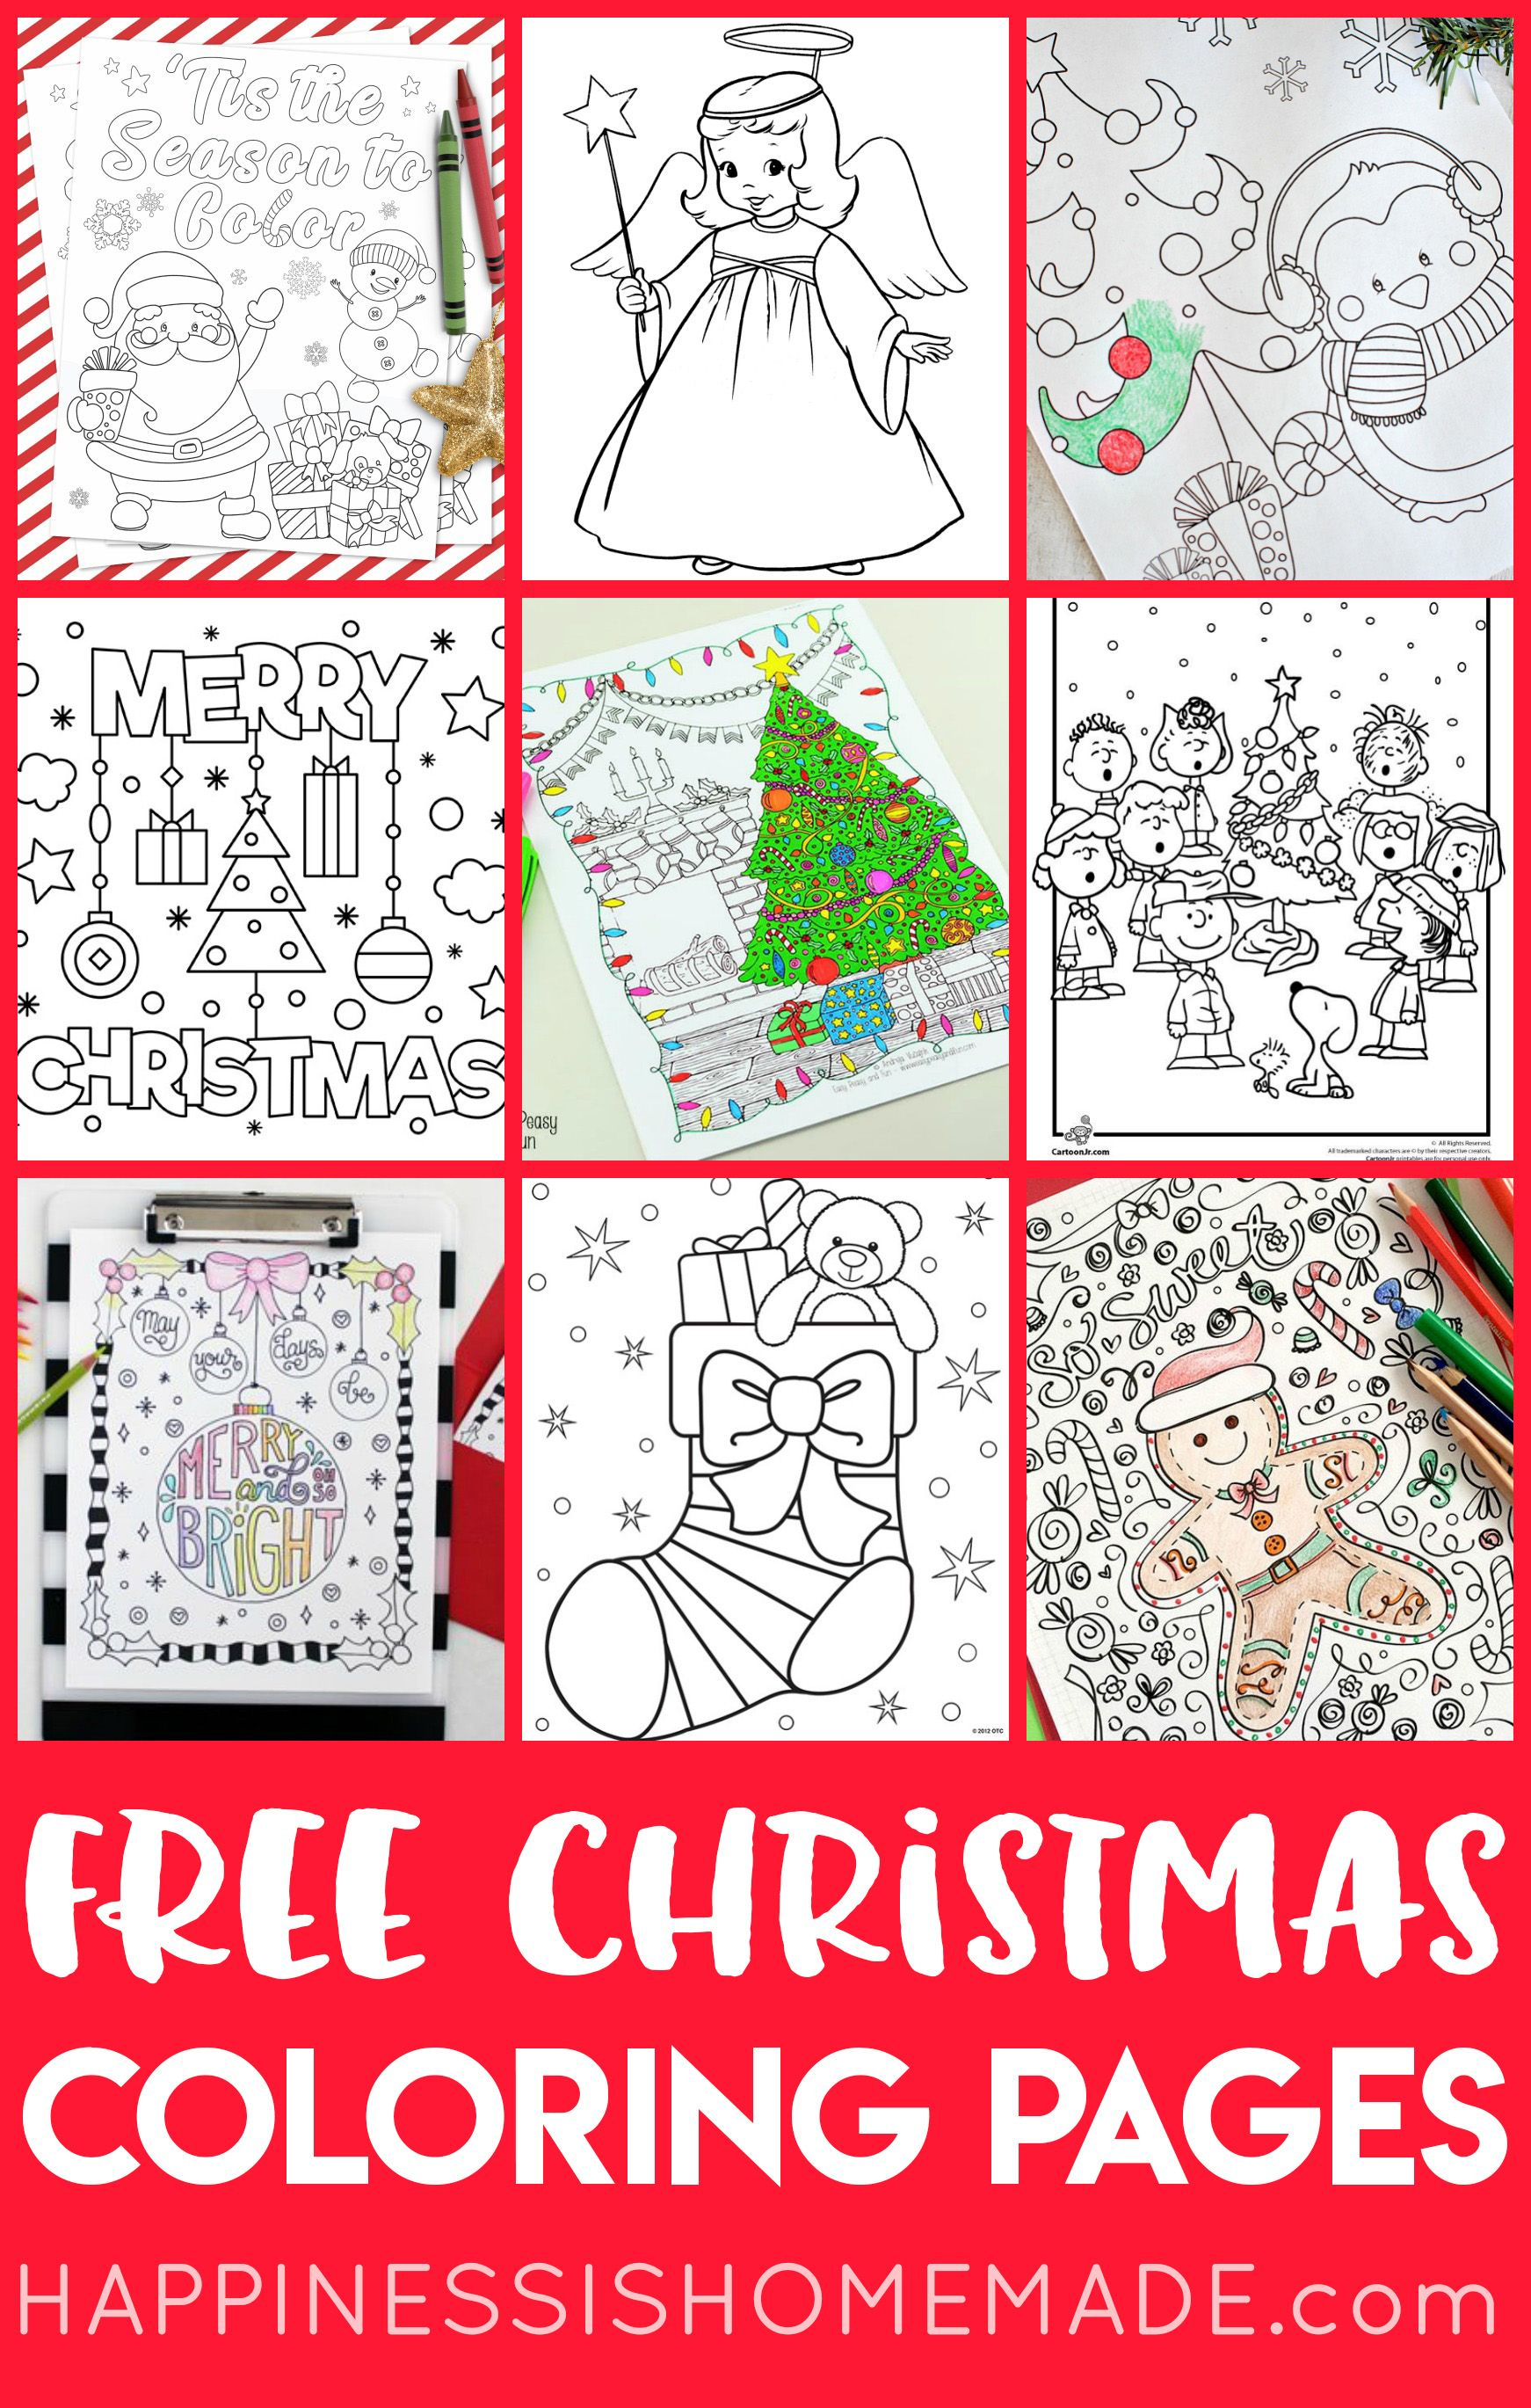 20+ Free Printable Christmas Coloring Pages For Adults & Kids - Free Printable Christmas Coloring Pages And Activities